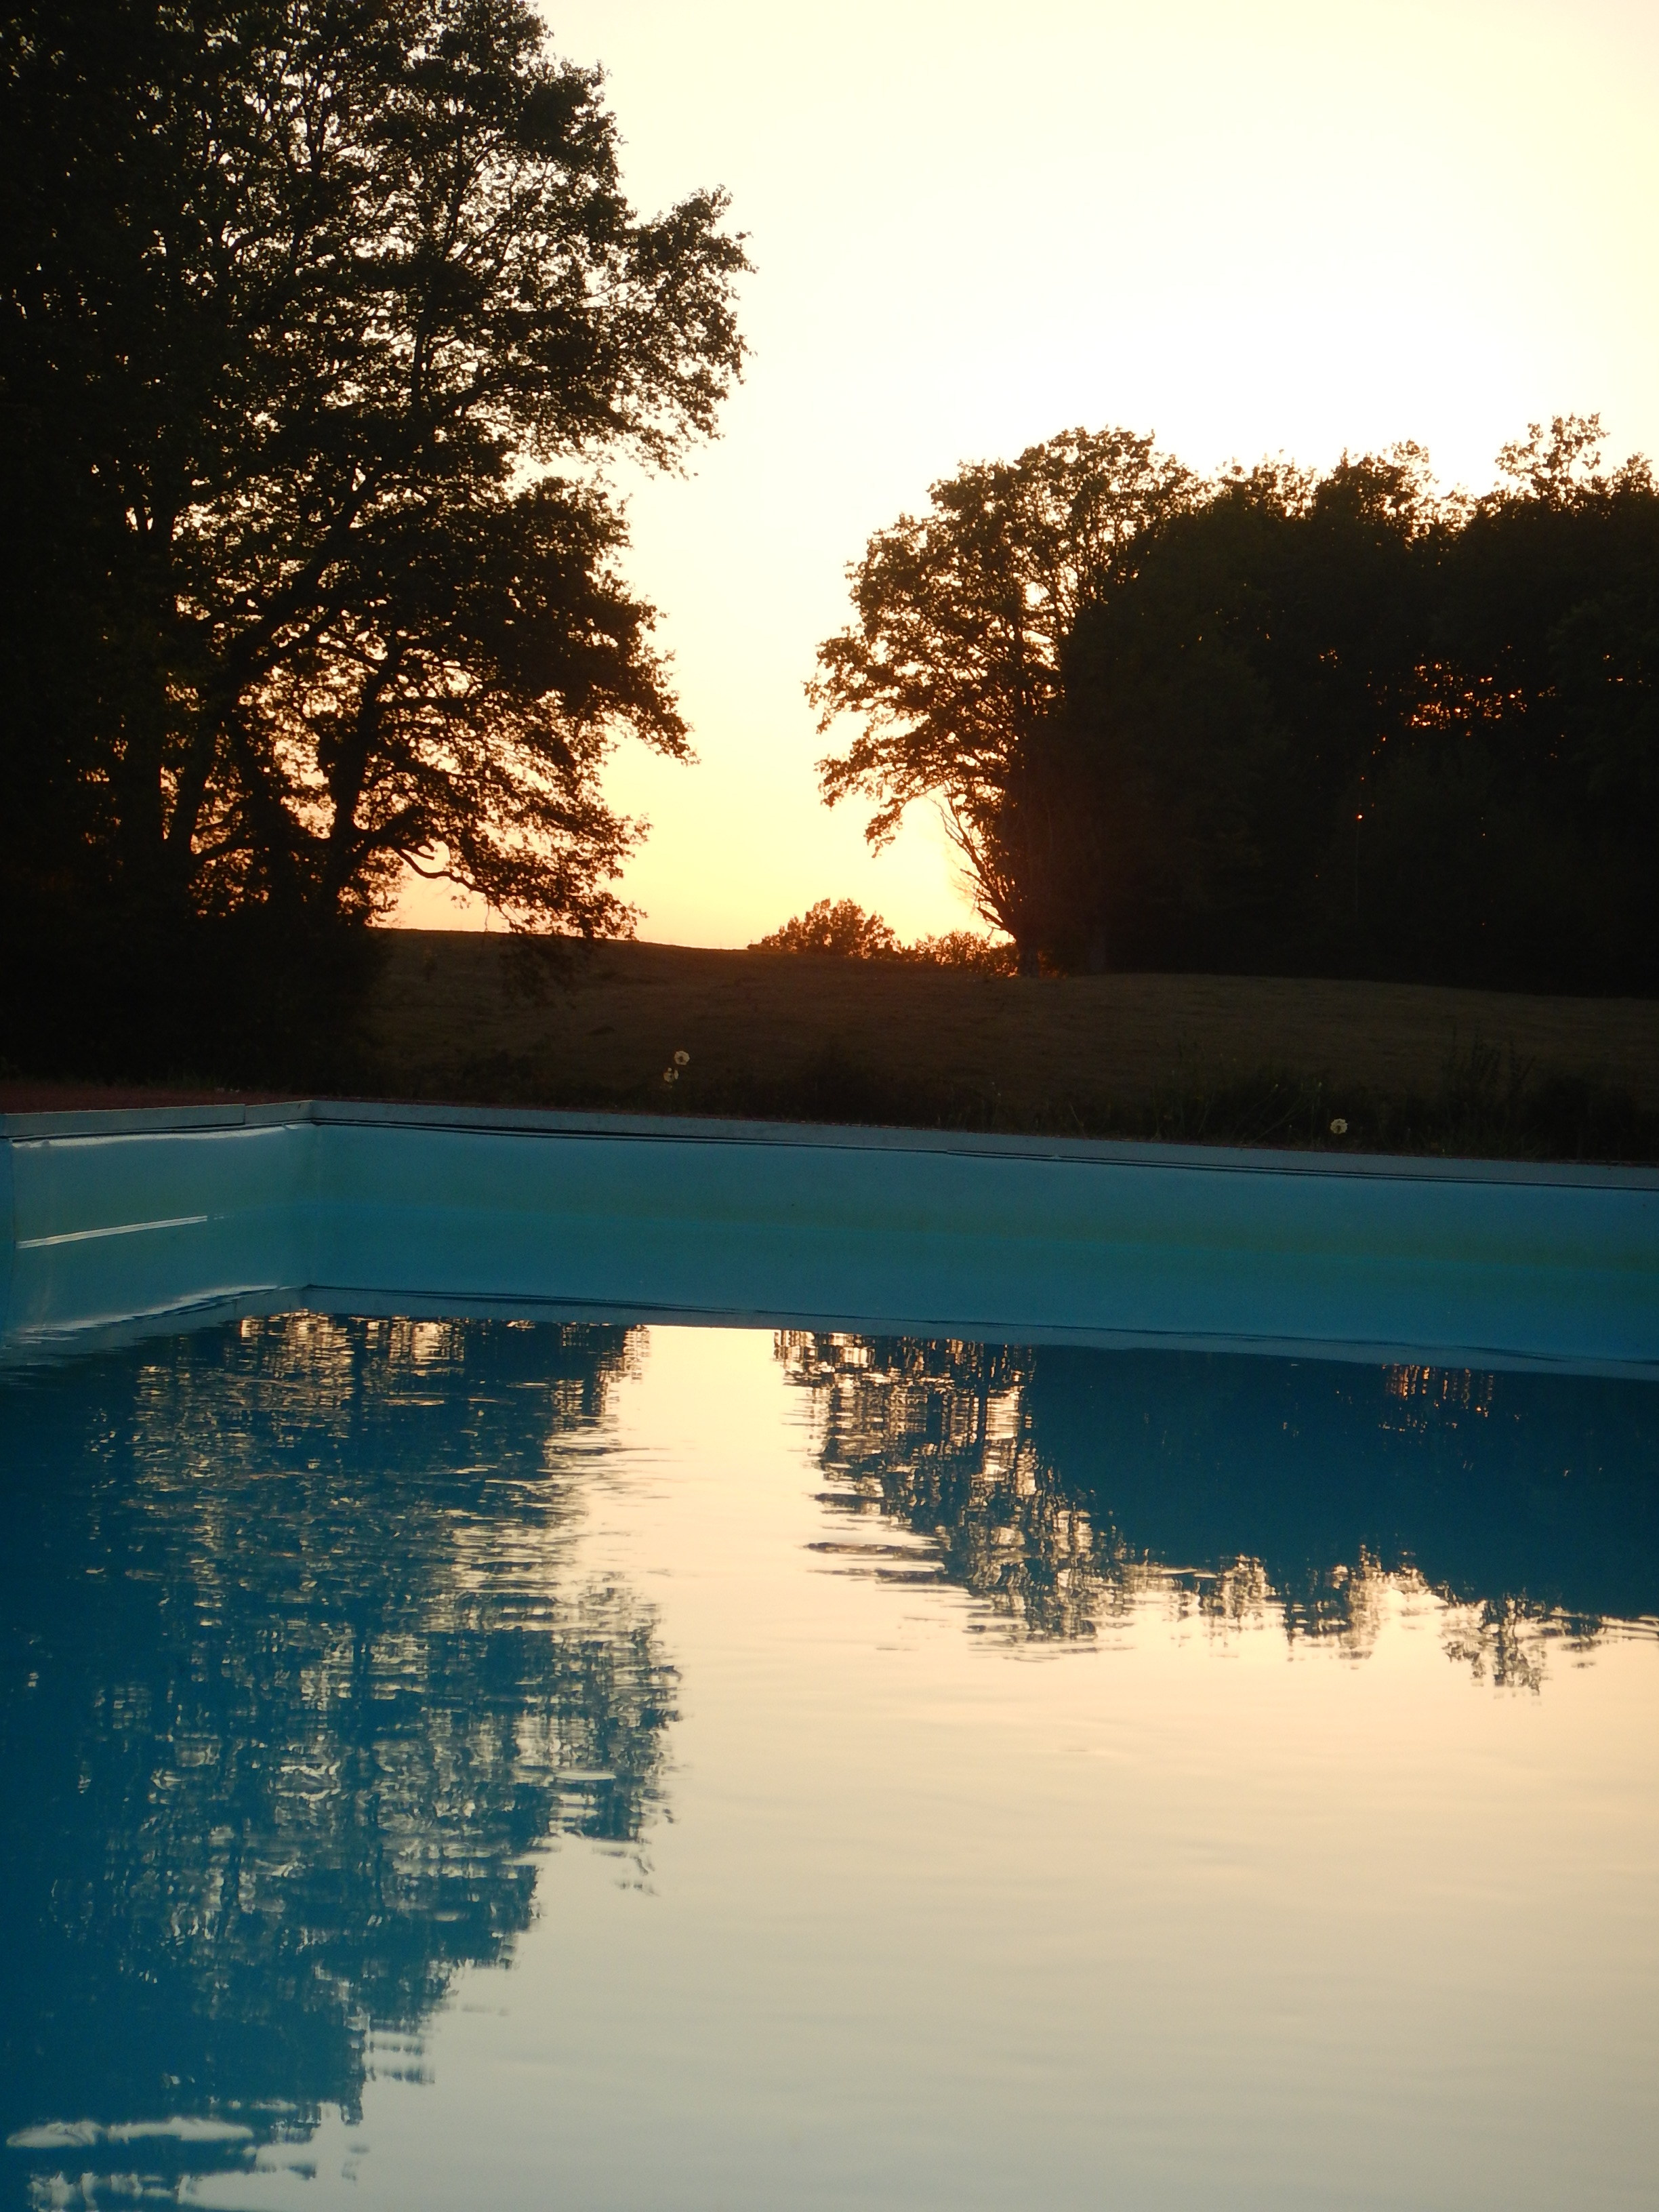 Sunset reflected in the Swimming pool